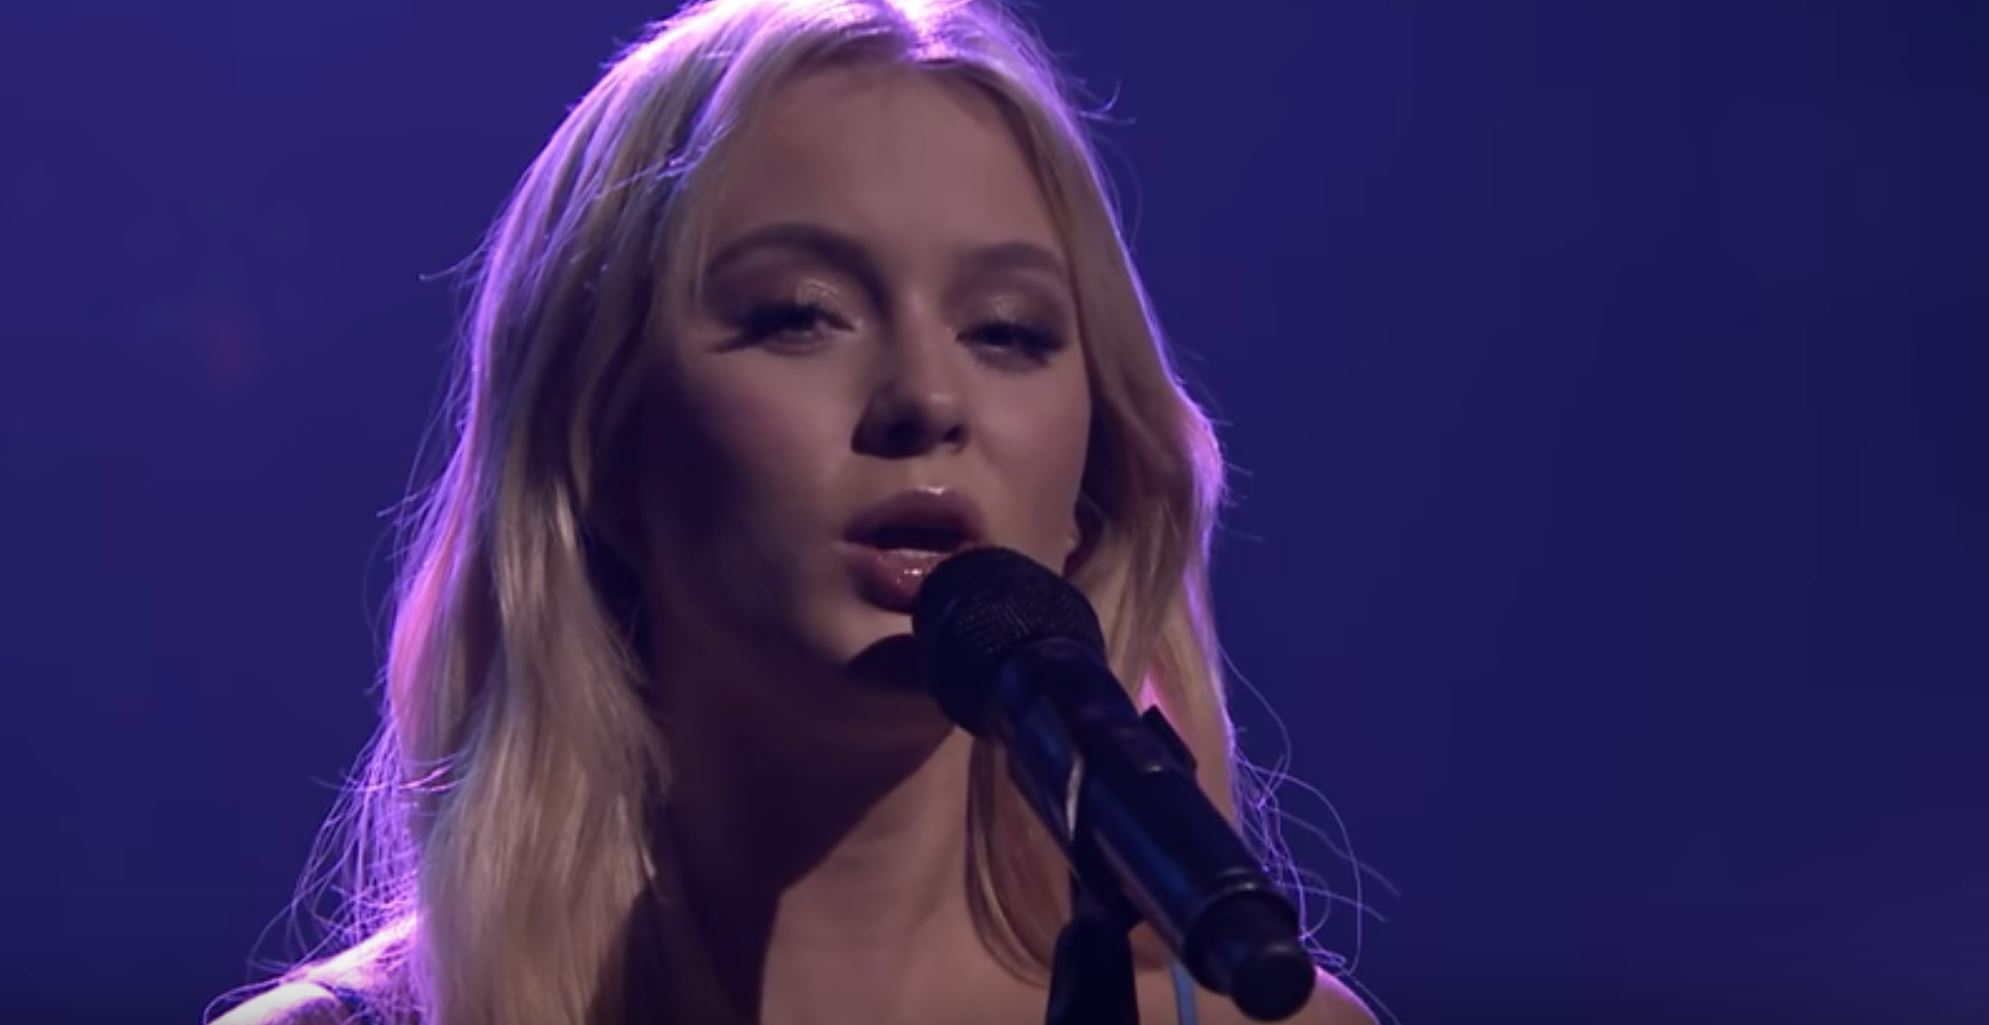 Watch Clean Bandit and Zara Larsson Flawless Performance on Fallon